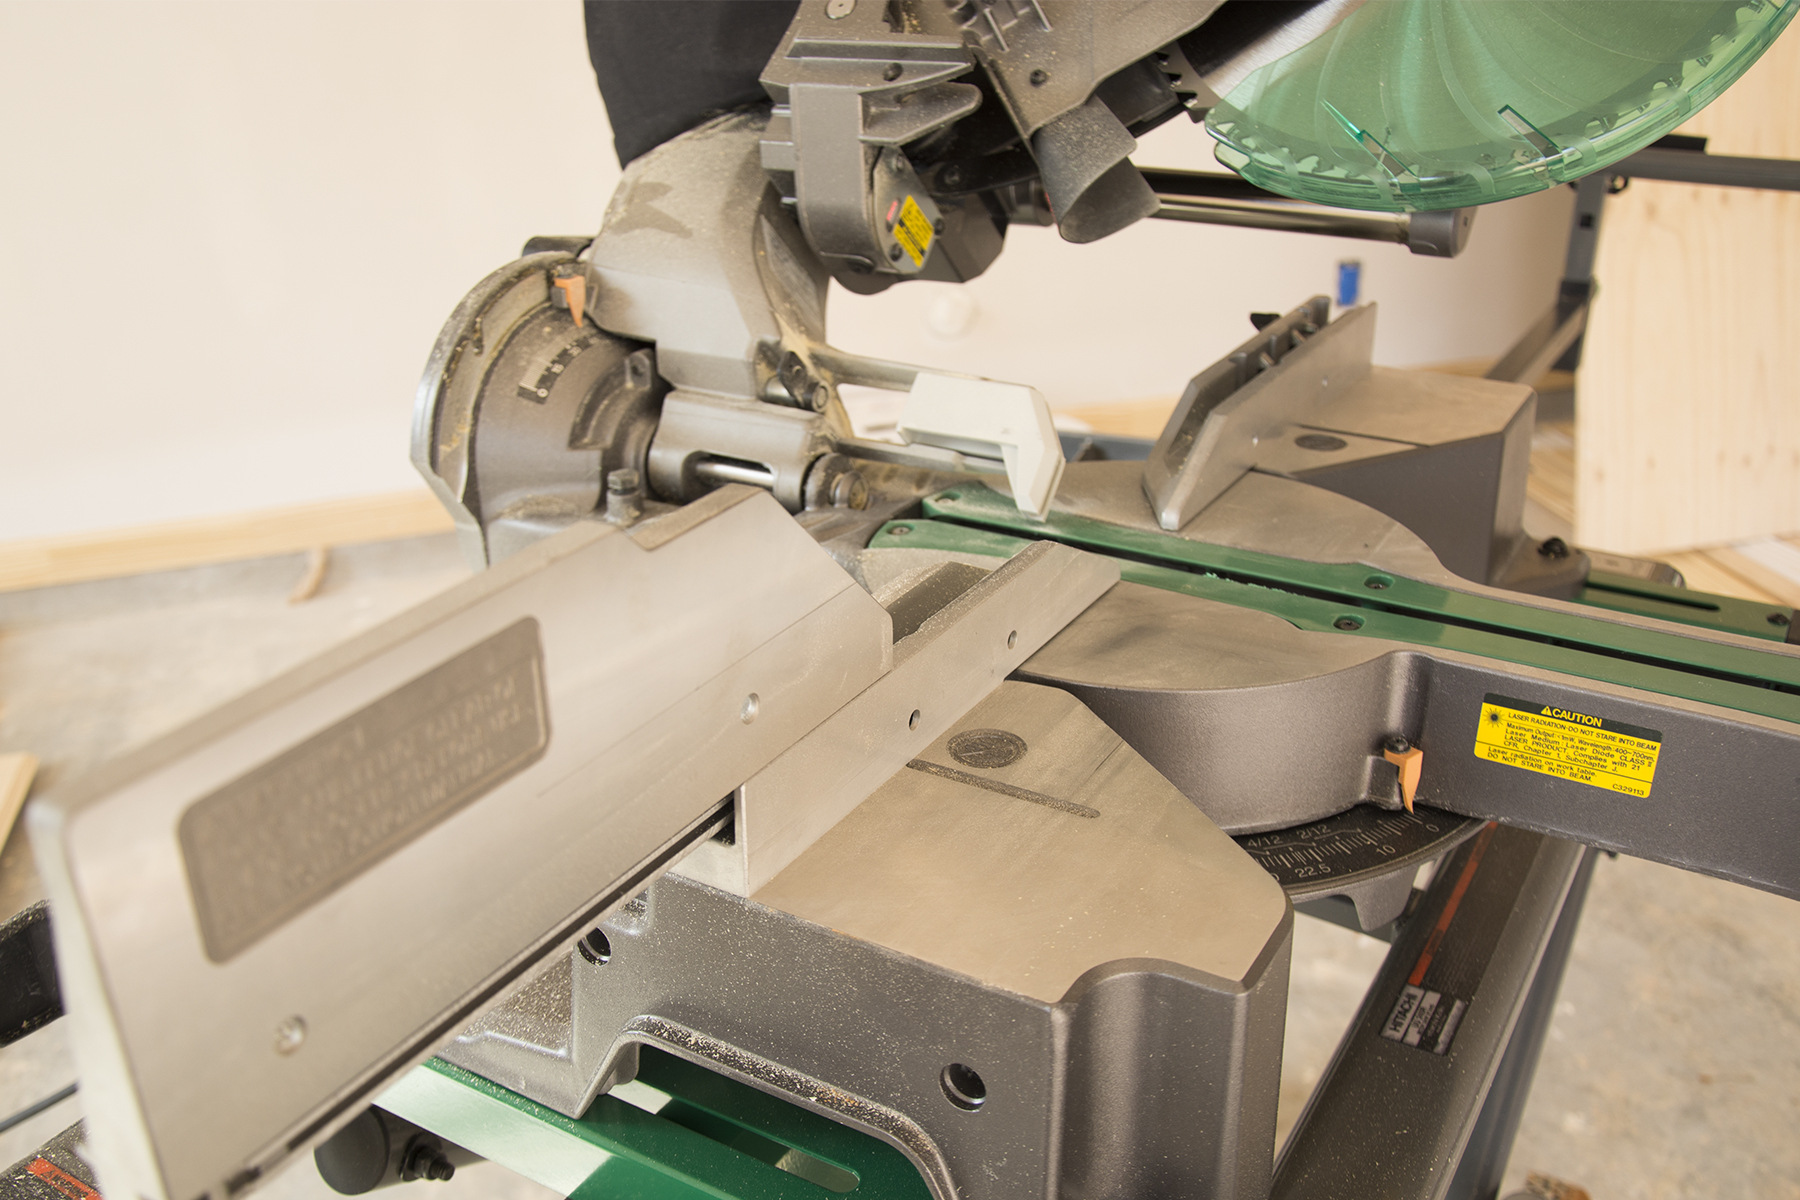 C12RSH2m Miter Saw FEATURE 2